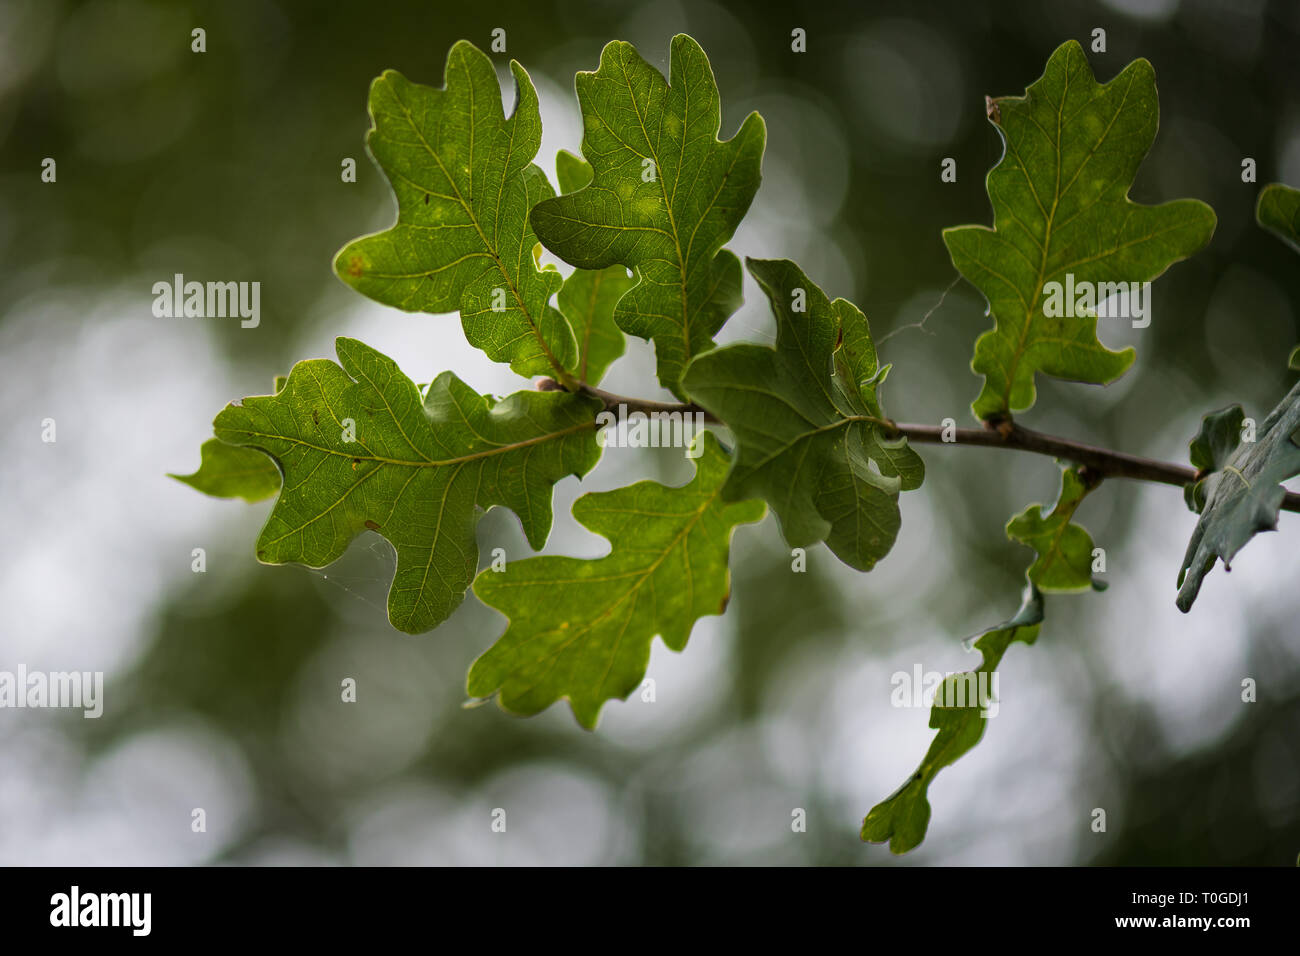 Details of oak tree leaf Stock Photo